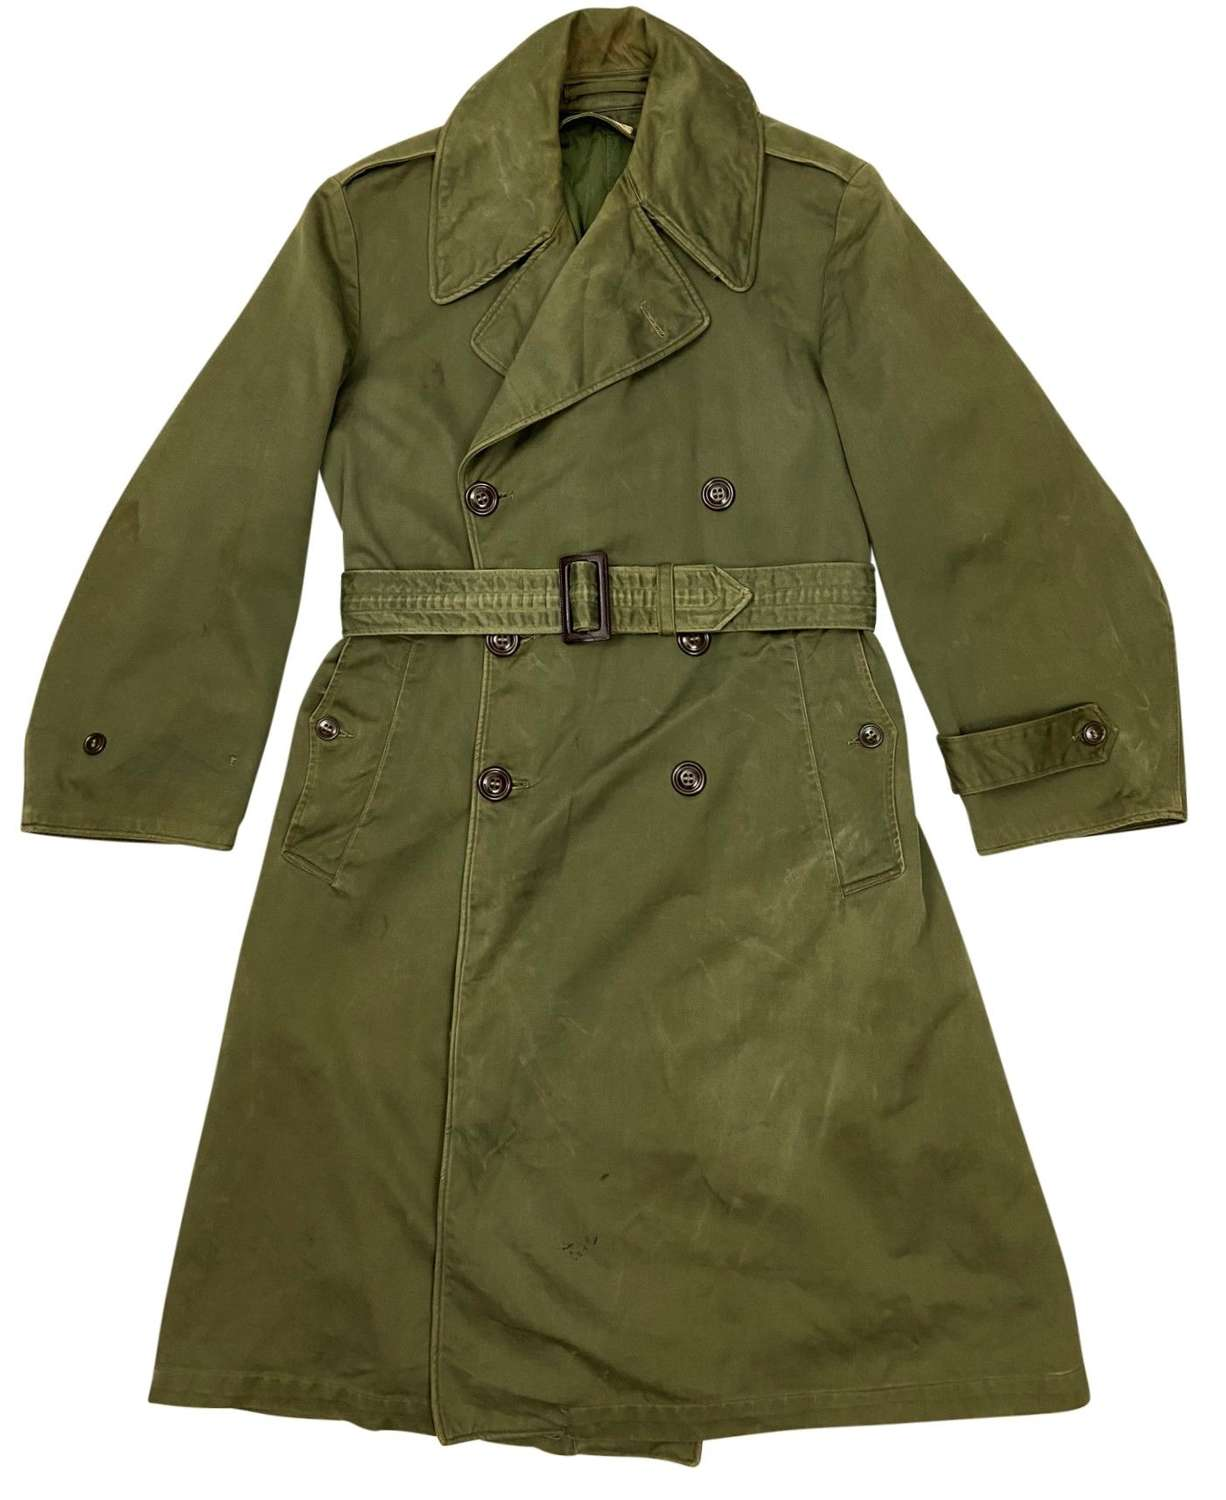 Original 1946 Dated American Army Raincoat - Size Short-Small